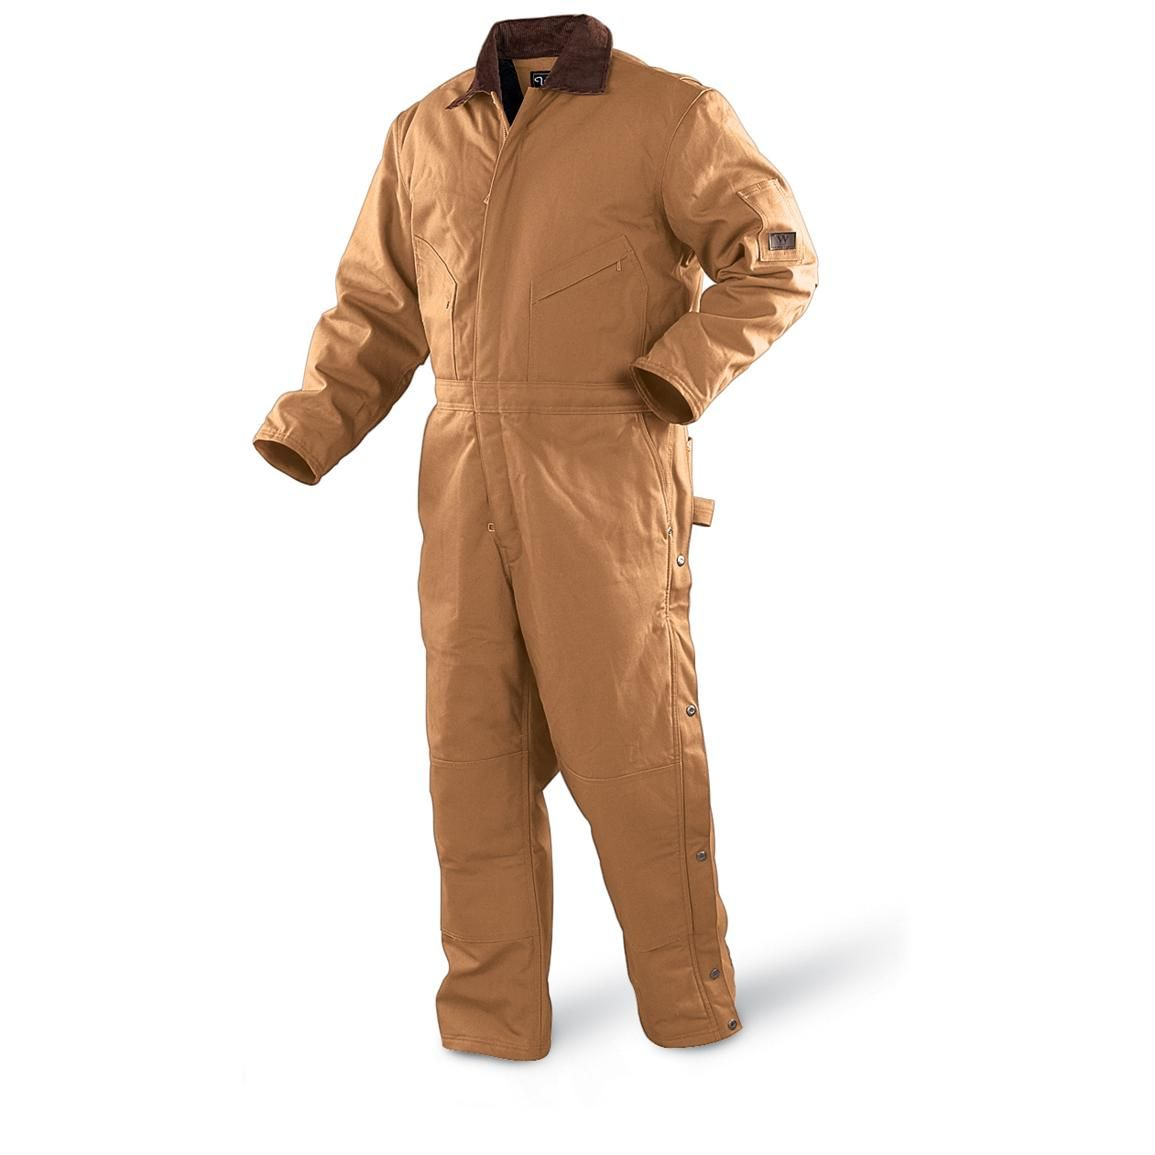 walls blizzard pruf insulated coveralls walls blizzard on walls coveralls id=19571